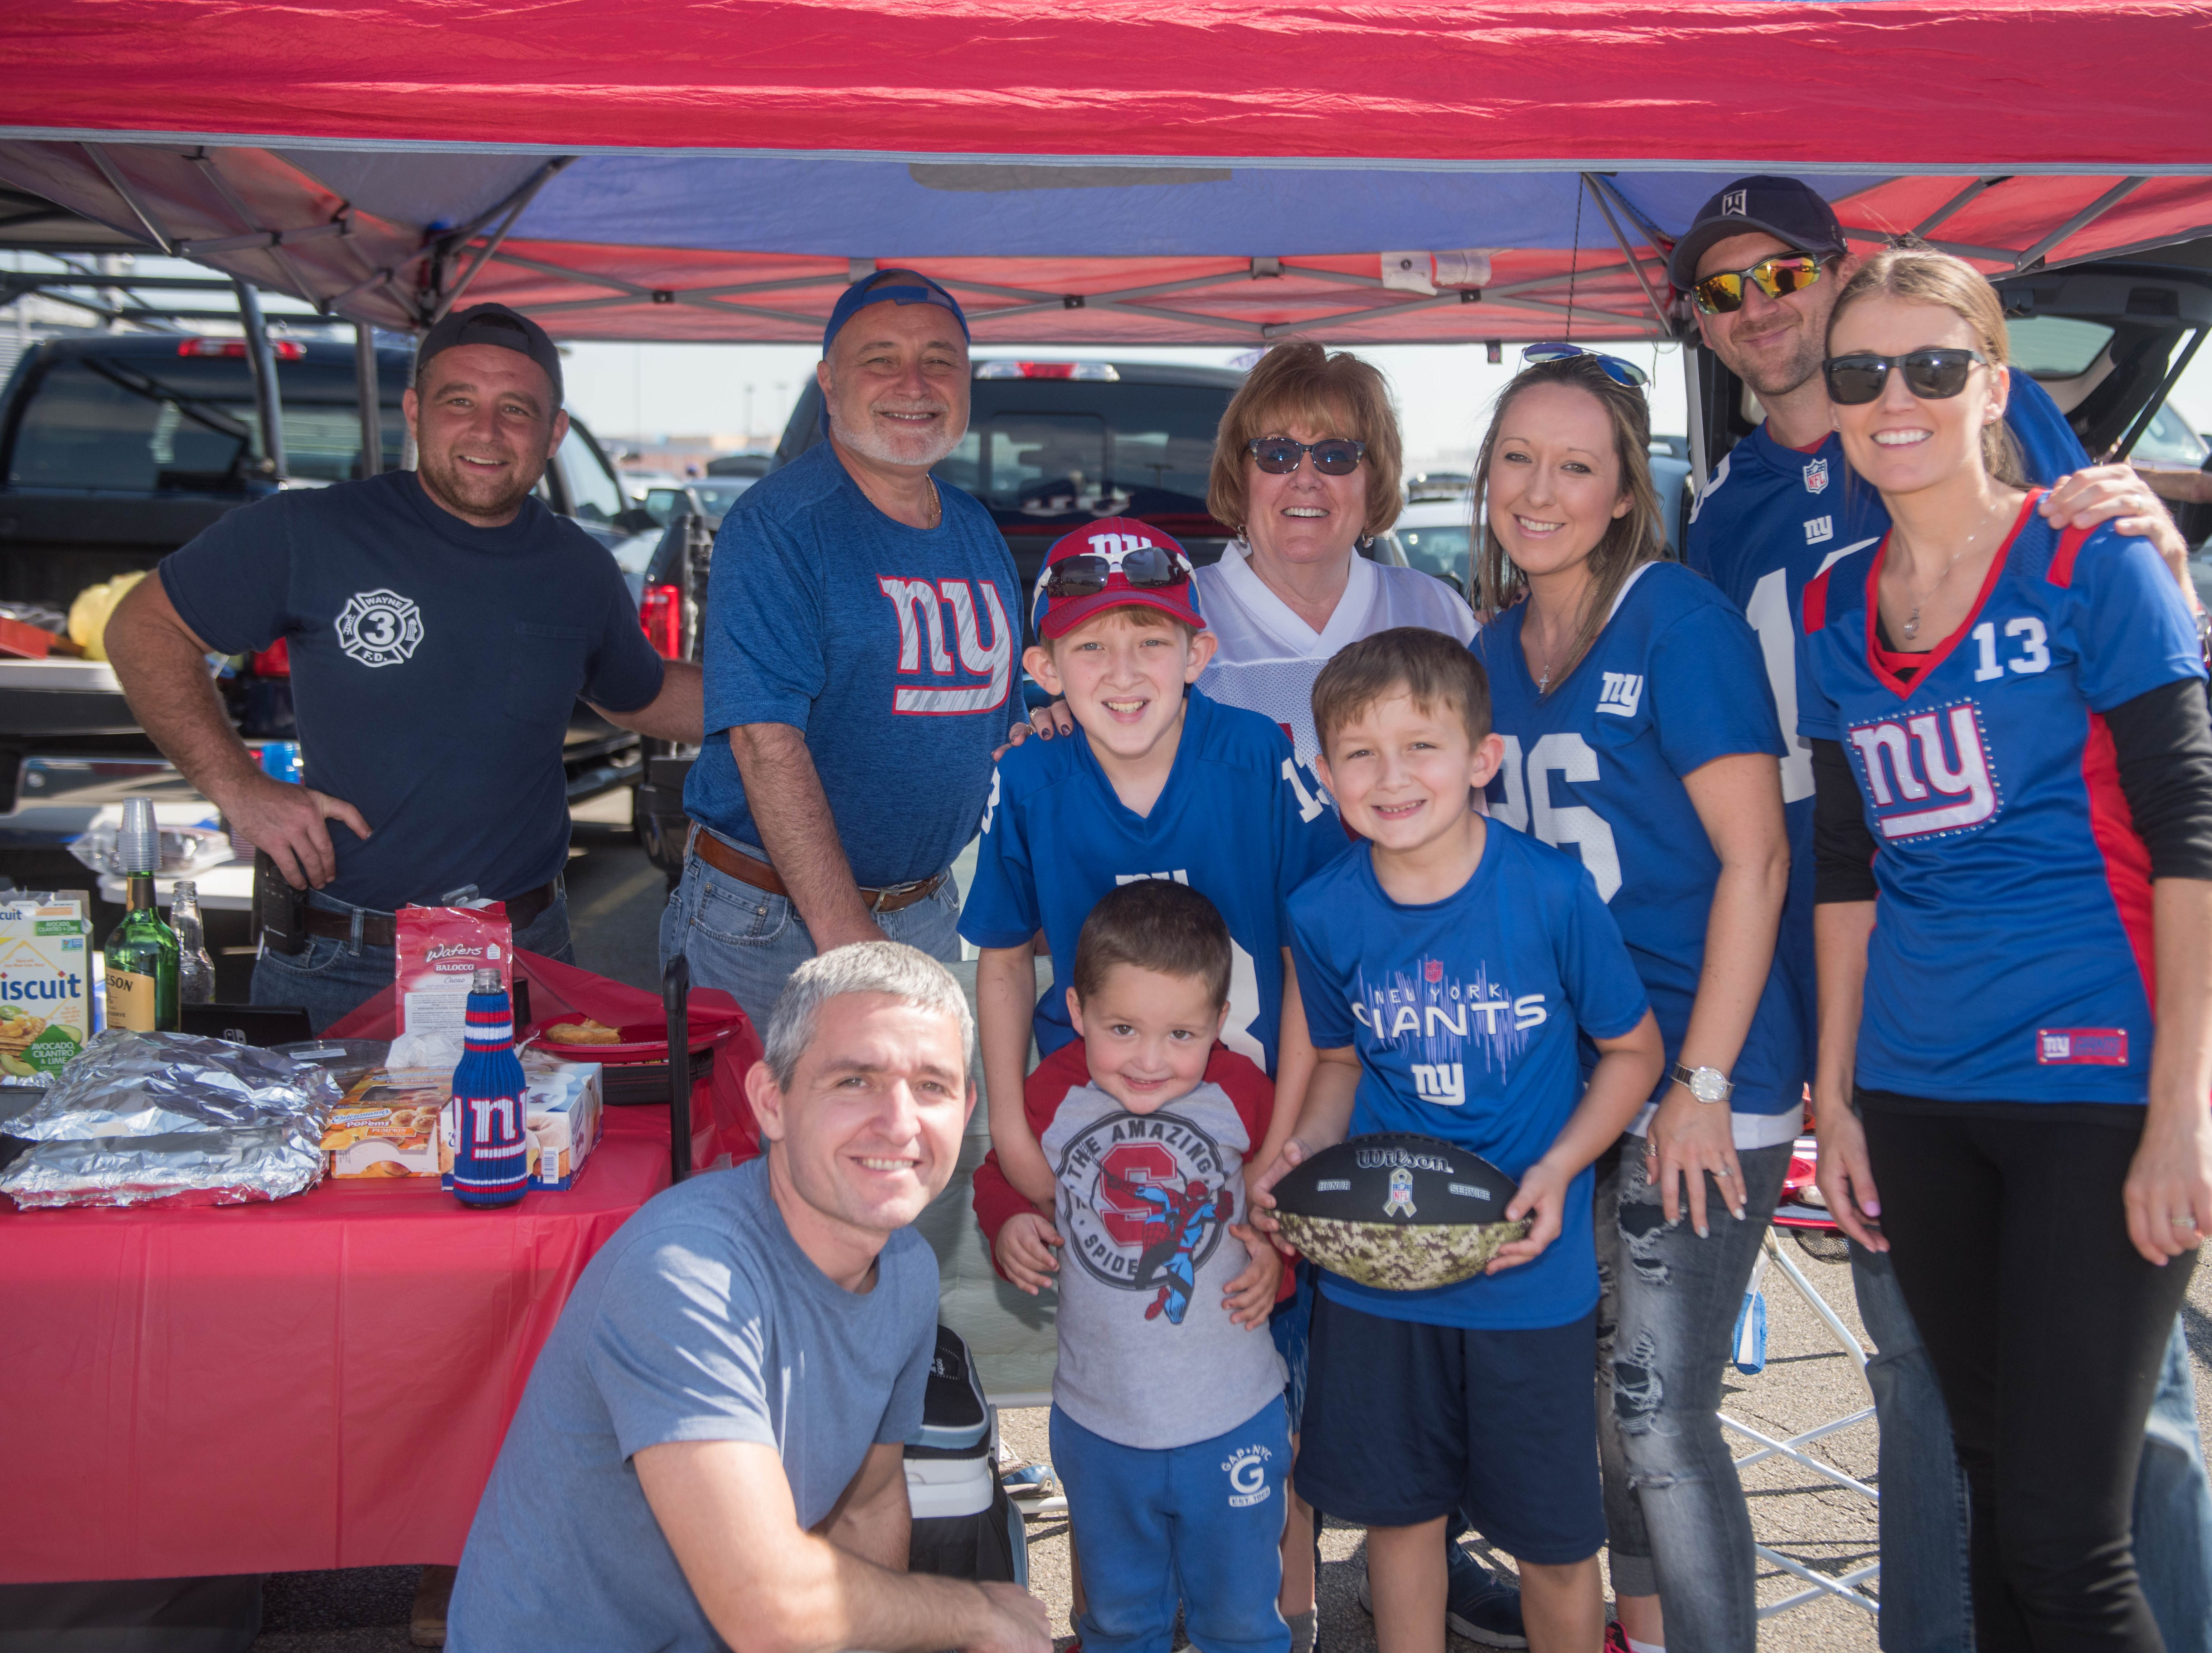 John, Ron, Kathy, Alex, Nicky, John, Ronnie, Nick, Jeanine John and Eva at the Giants vs. Saints tailgate party, Sunday, Sept. 30, 2018.